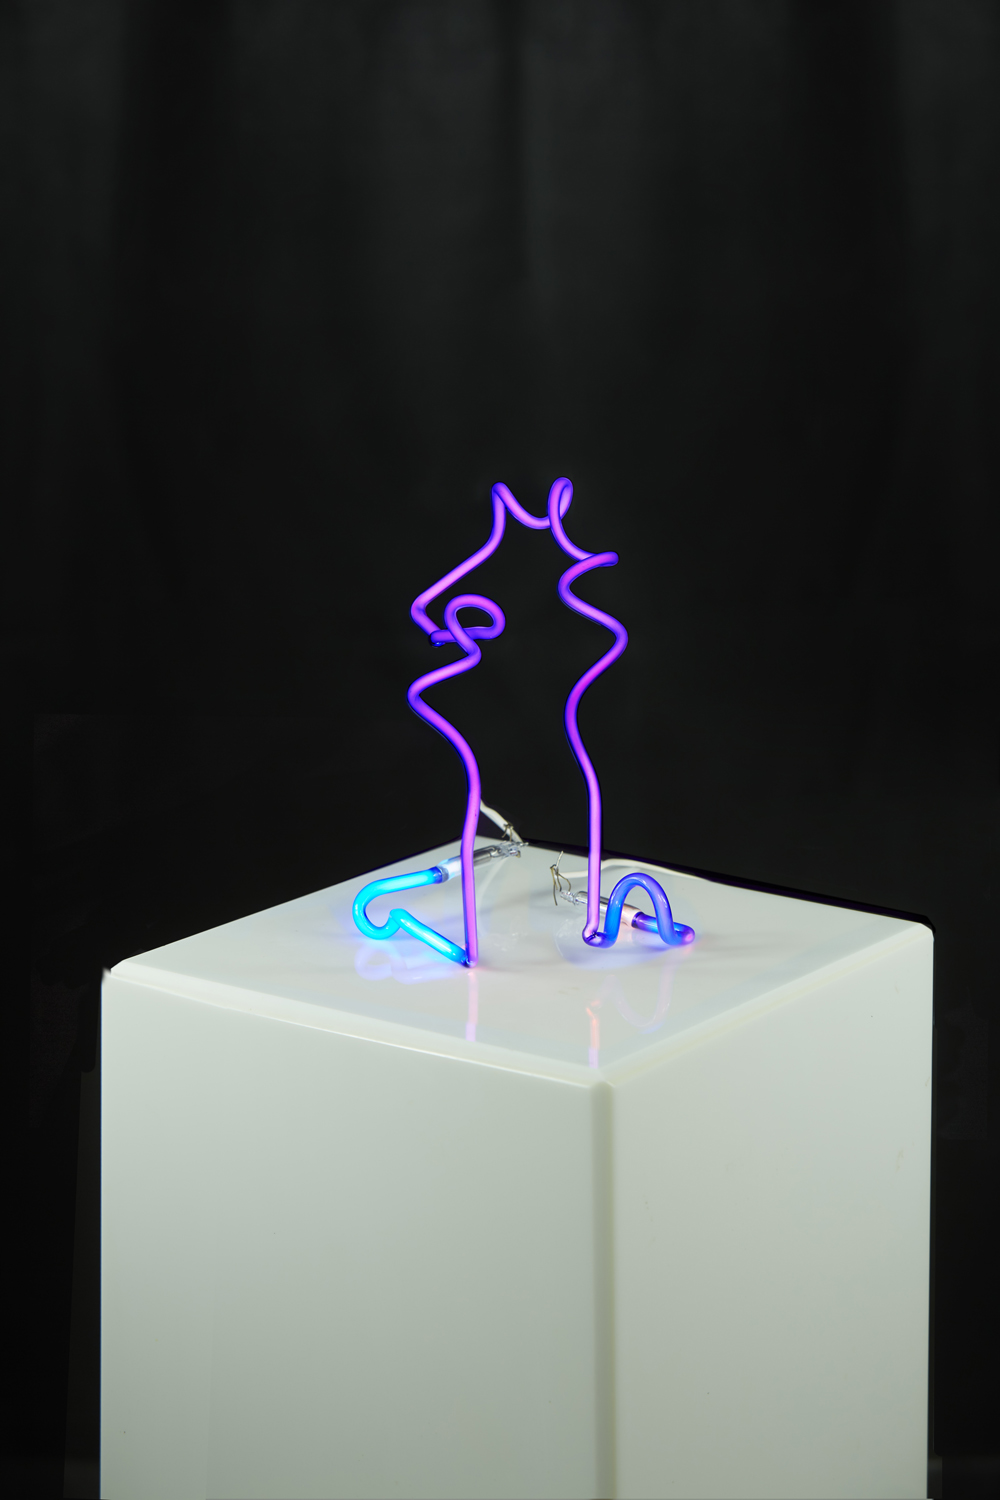 marco guglielmino <p>Untitled (Blue), 2016.<br /> 9 x 7.5 x 7 inches.<br /> Glass, Neon Gas, and Mercury. Sold</p>  portfolio